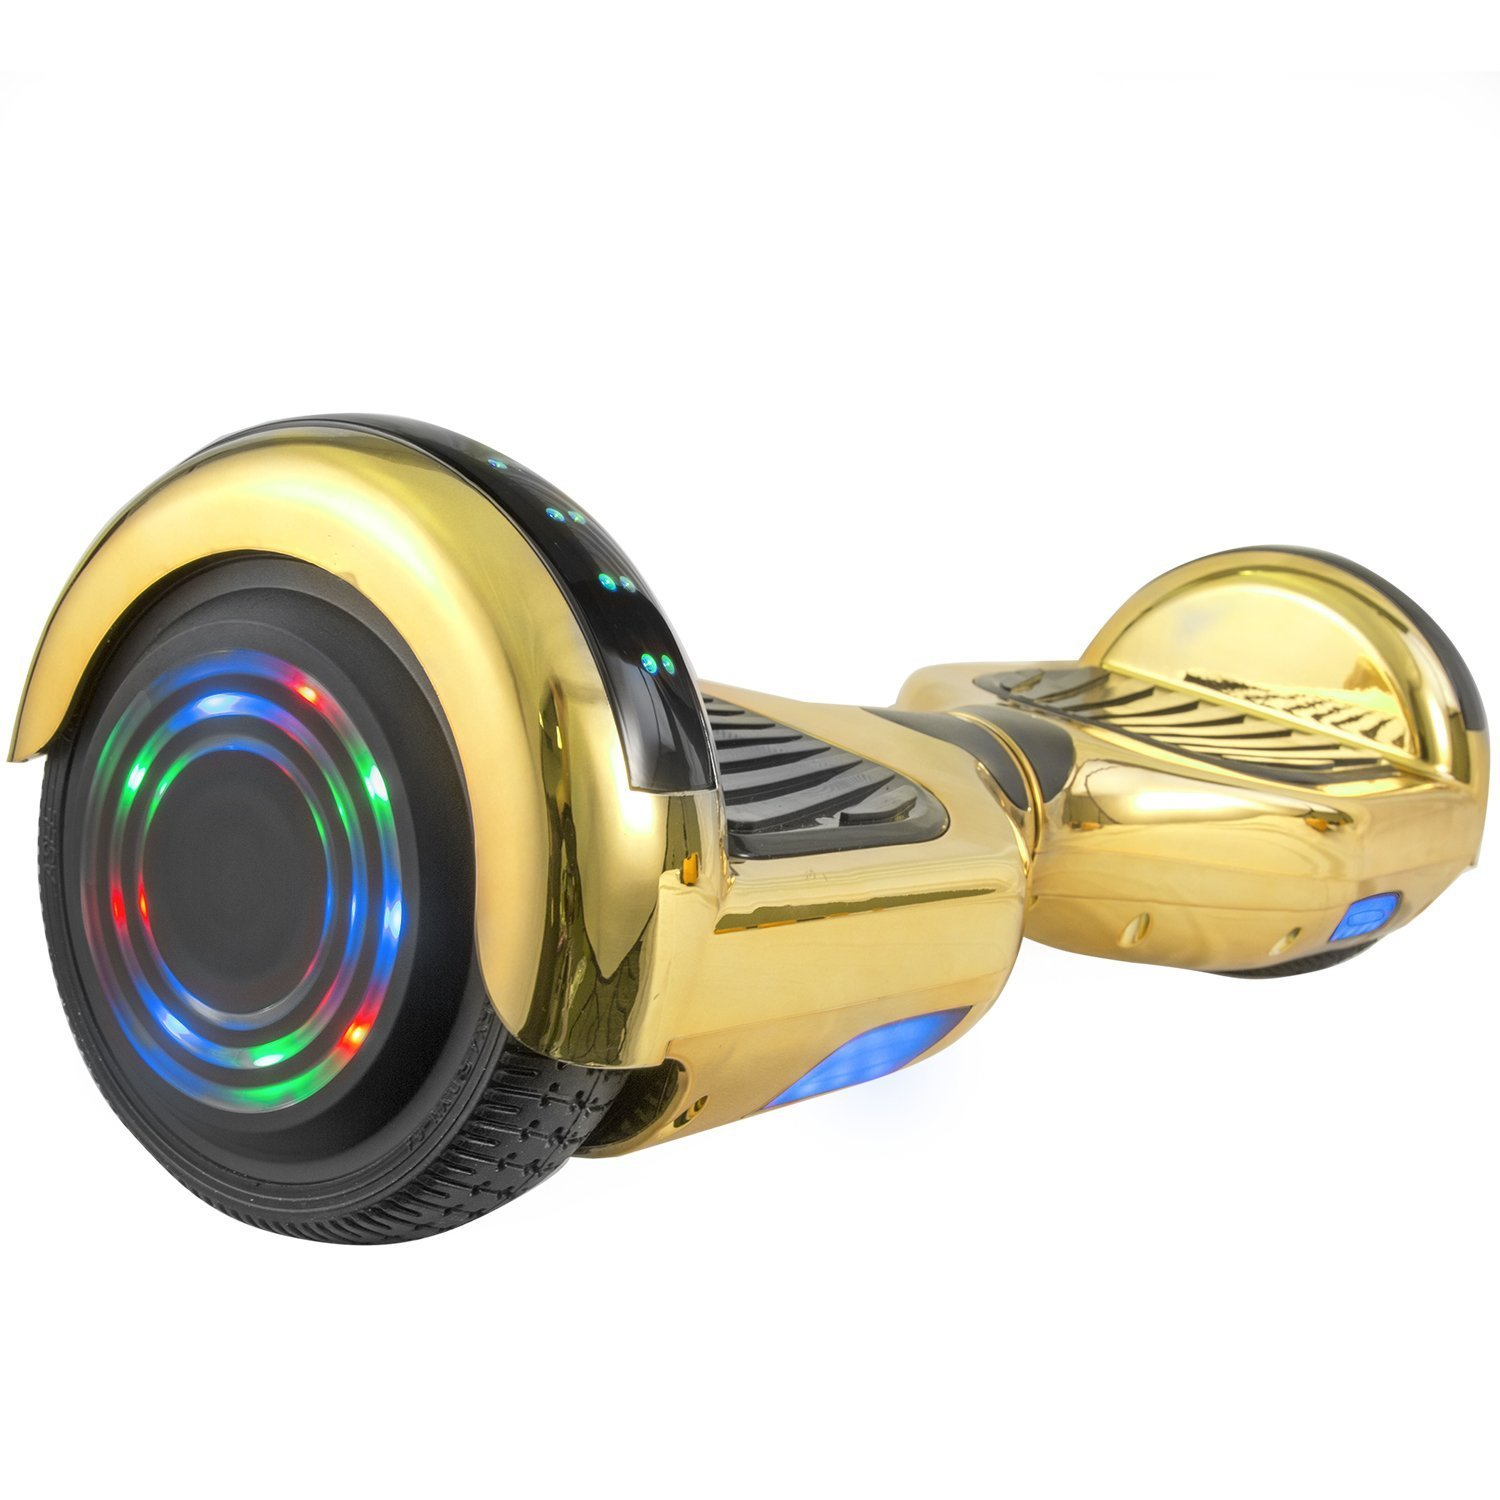 WorryFree Gadgets Chrome Self-Balancing Hoverboard w/Bluetooth Speaker, UL2272 Certified - LED Lights (Gold)